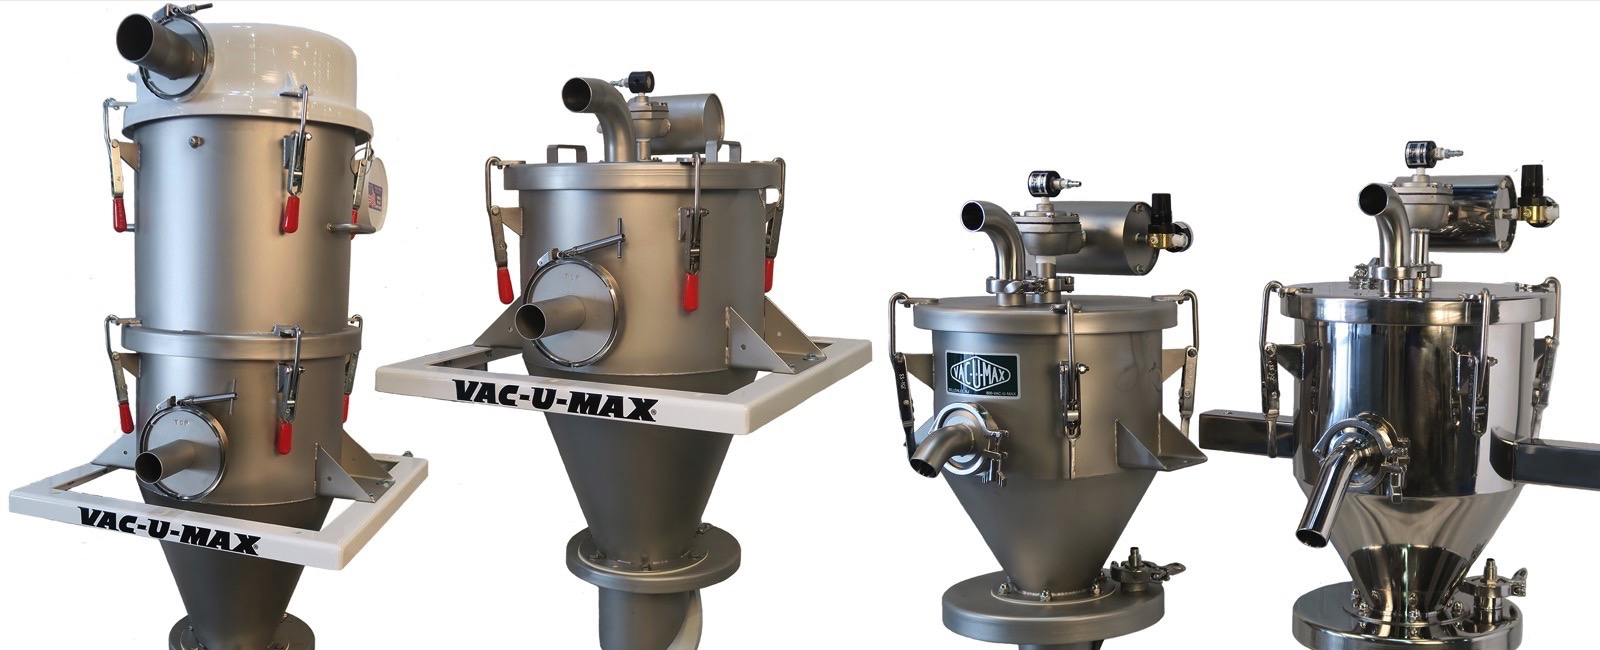 VAC-U-MAX at iPBS 2018: Powder Handling and Combustible Dust Cleaning Solutions